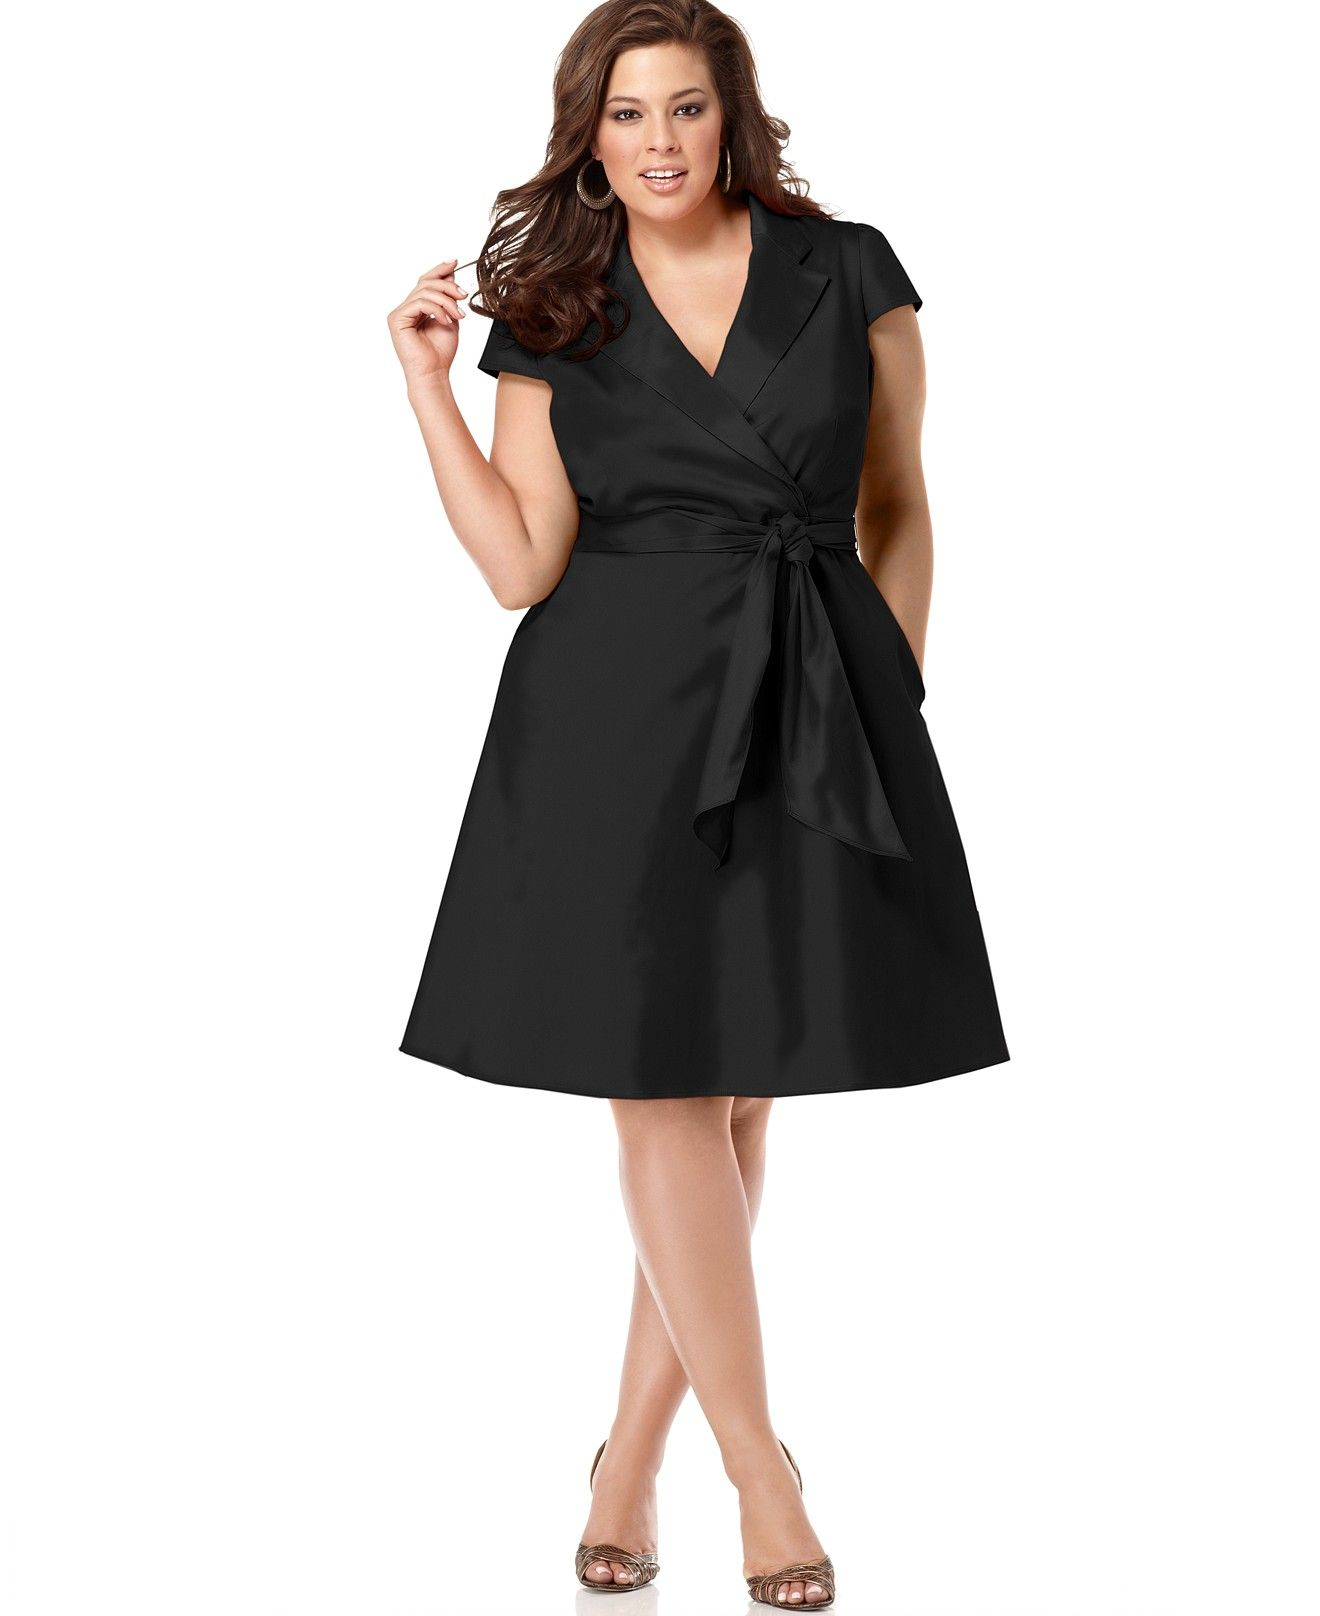 Spense Plus Size Short-Sleeve Wrap Dress - Dresses - Plus ...